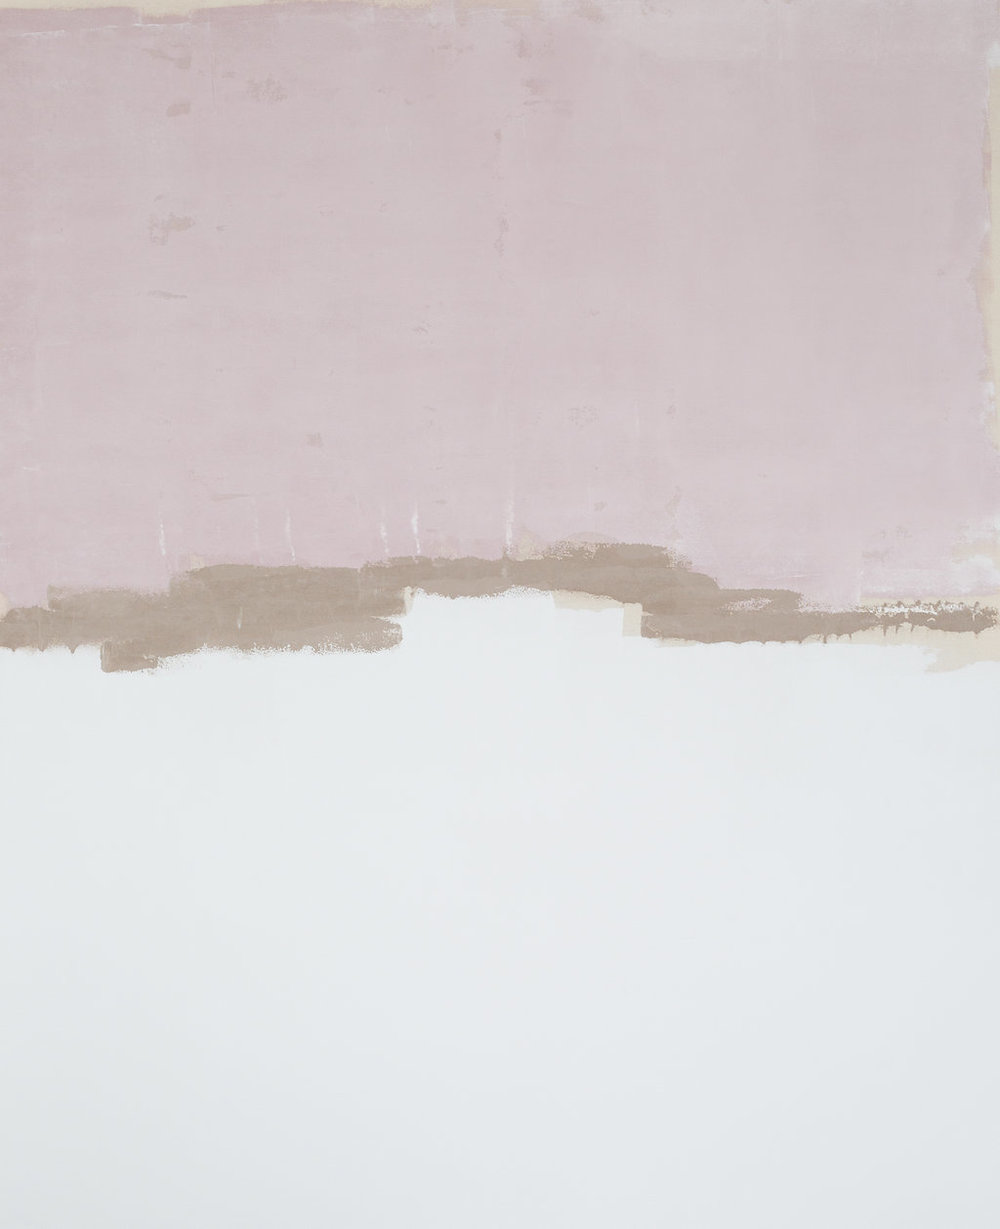 mauve ivy - 58x46 in.Available